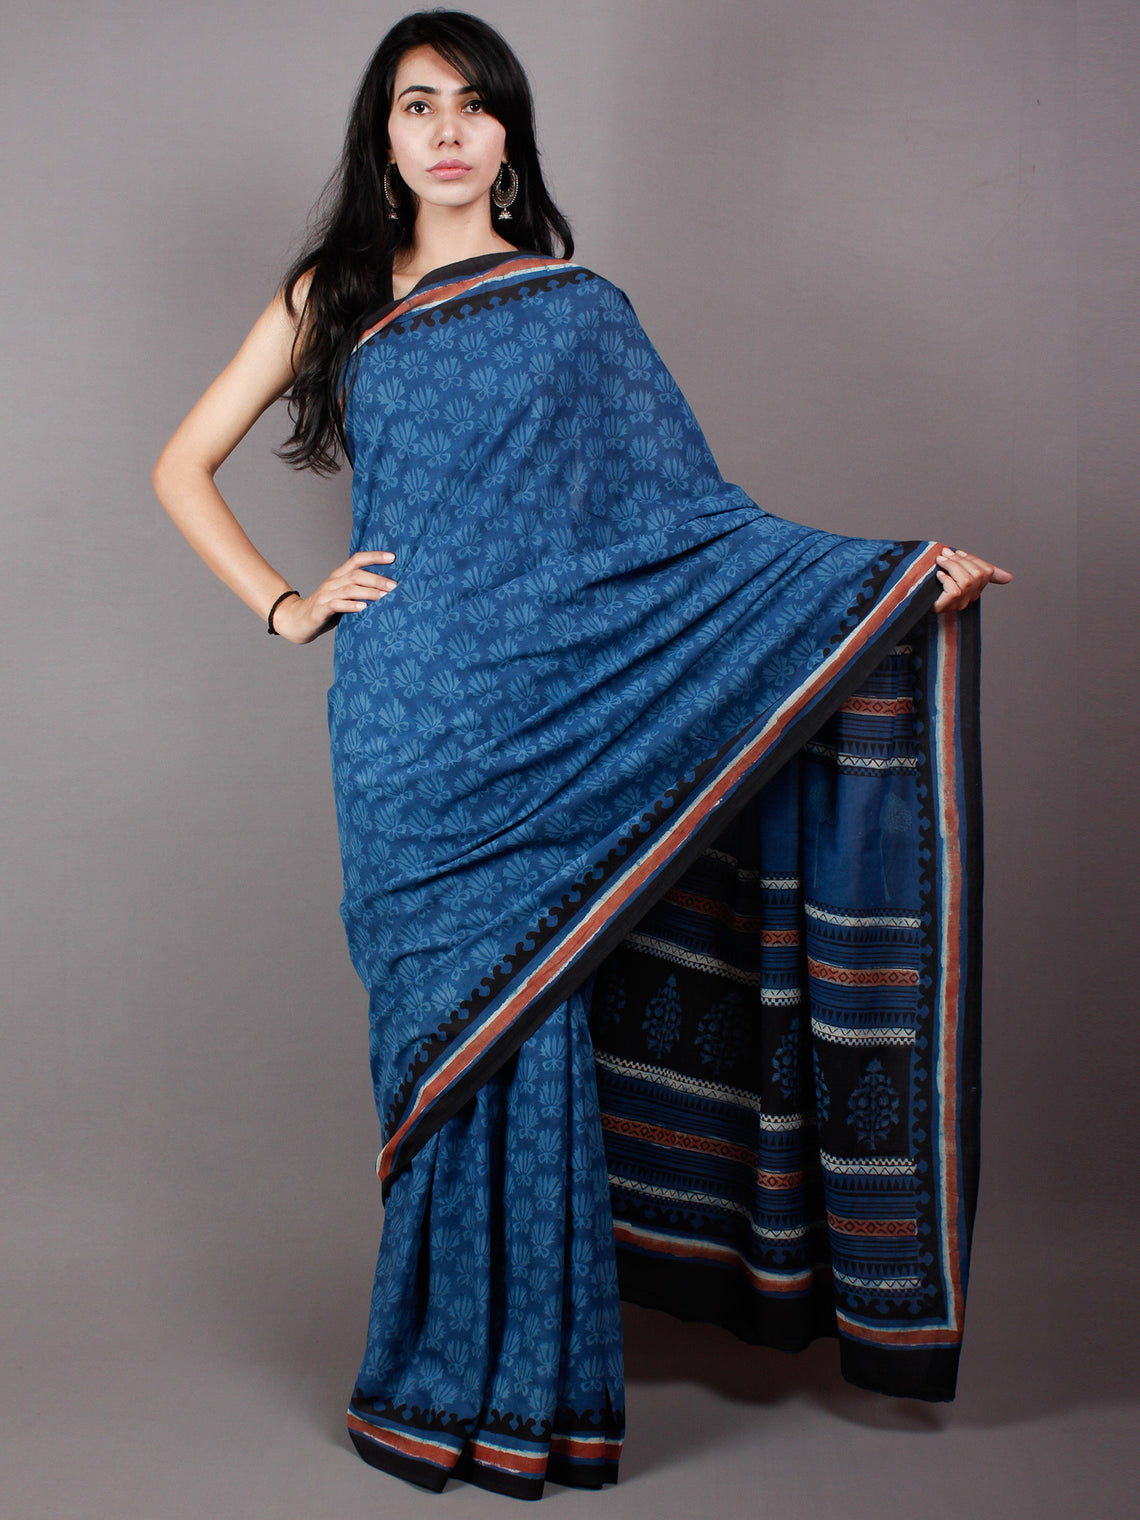 True Blue & Baby Blue Cotton Hand Block Printed Saree in Natural Colors With Red Black Border - S03170484